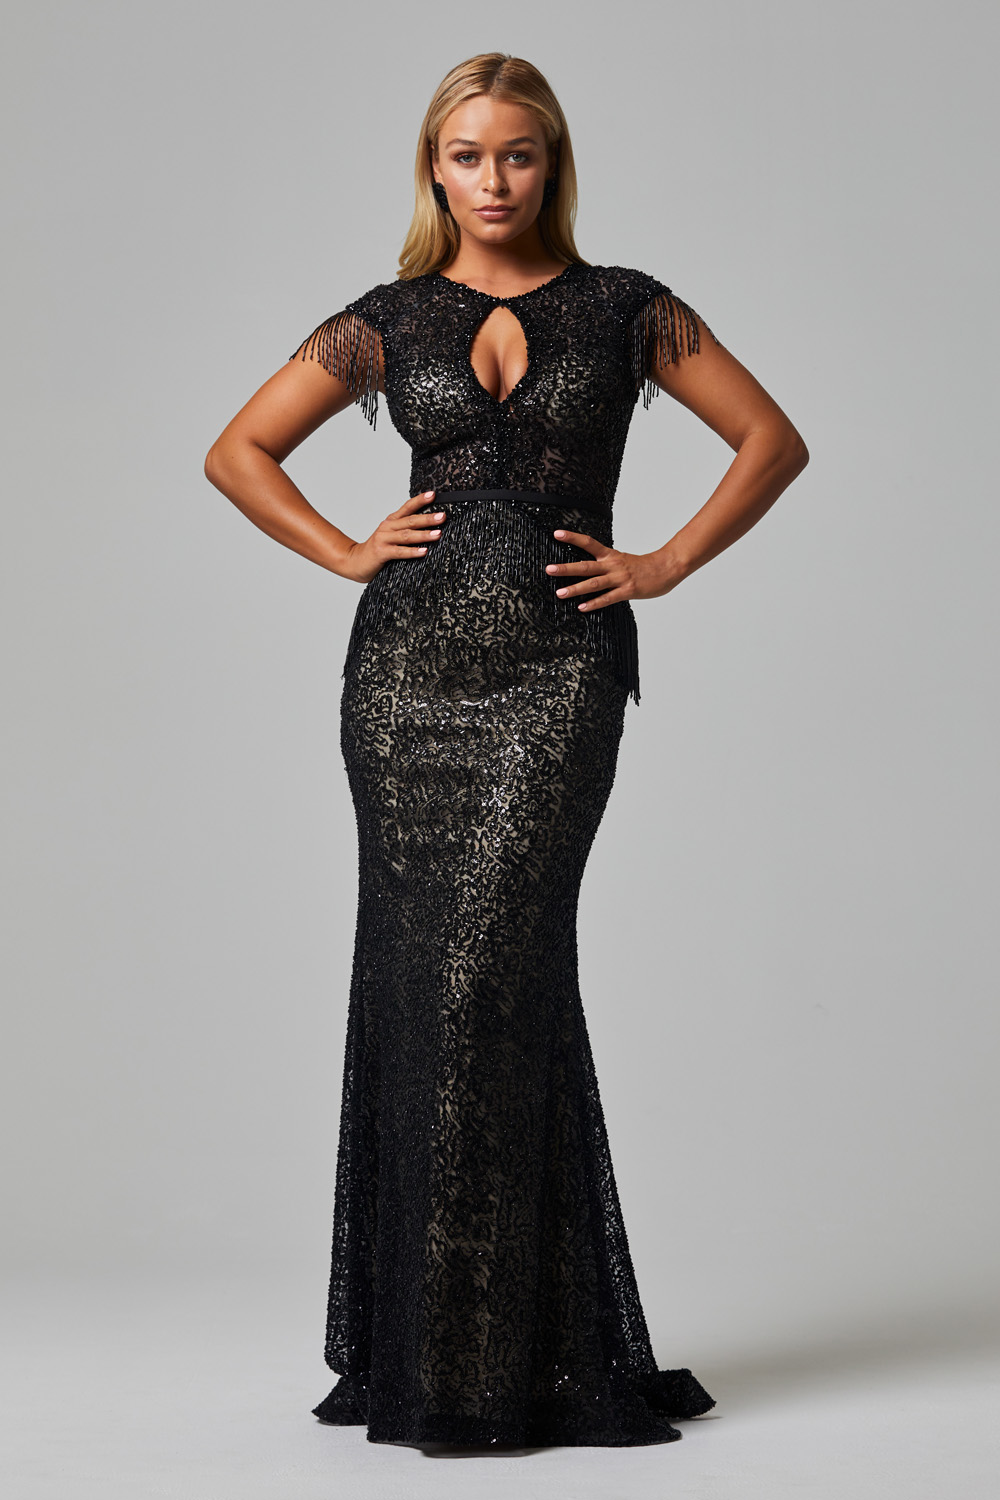 cec19c63e1af Anika Evening Gown - 2019 Autumn Winter - Tania Olsen Designs